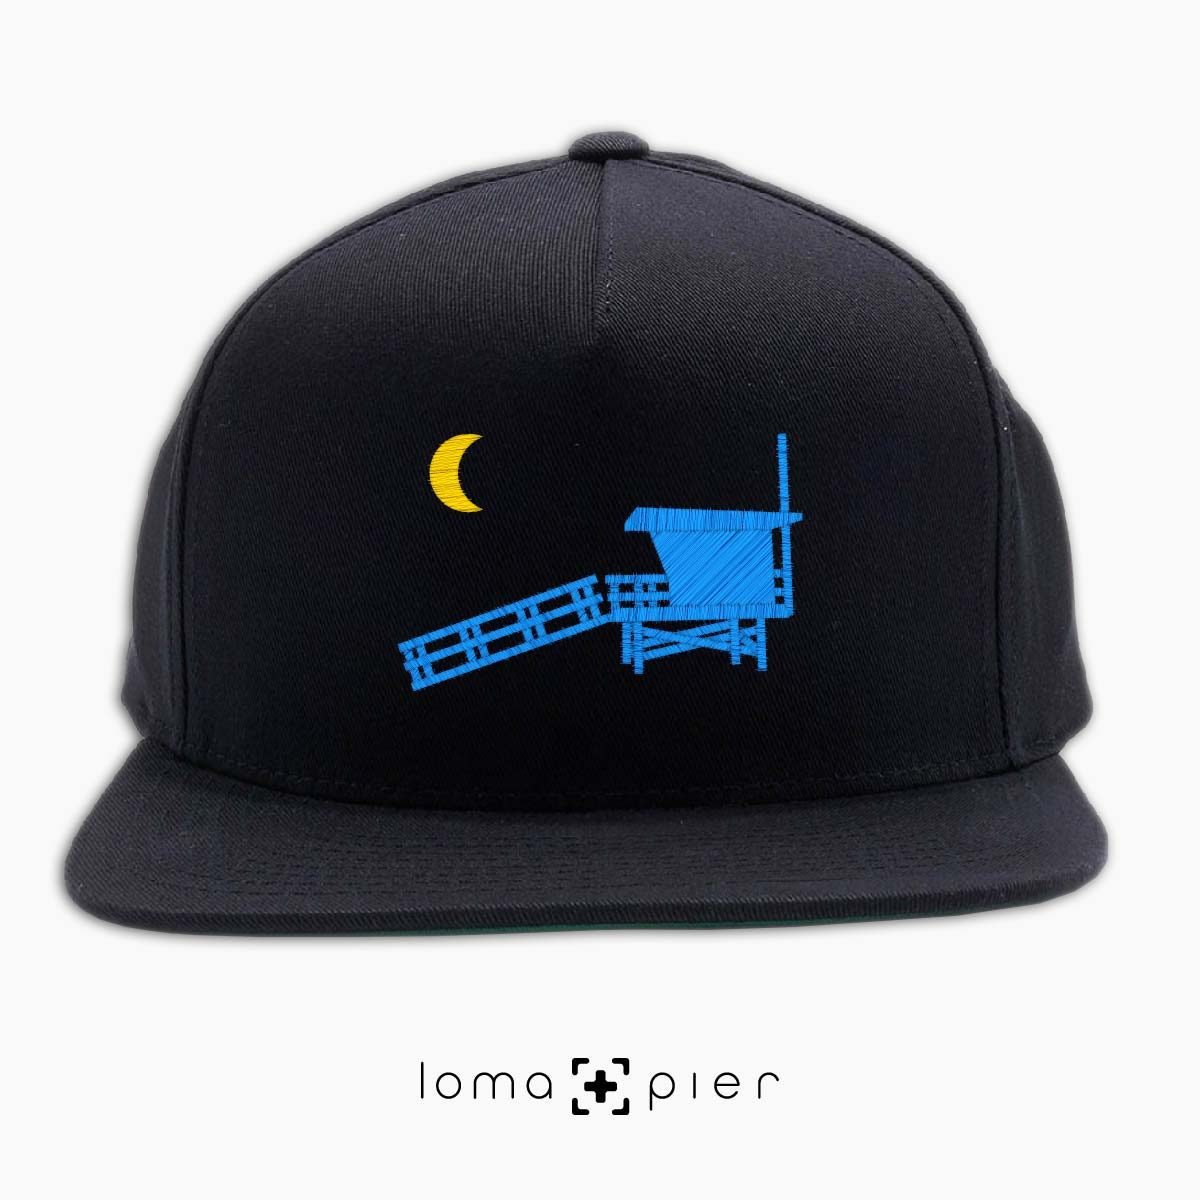 hermosa beach LIFEGUARD TOWER icon embroidered on a black classic snapback hat by loma+pier hat store